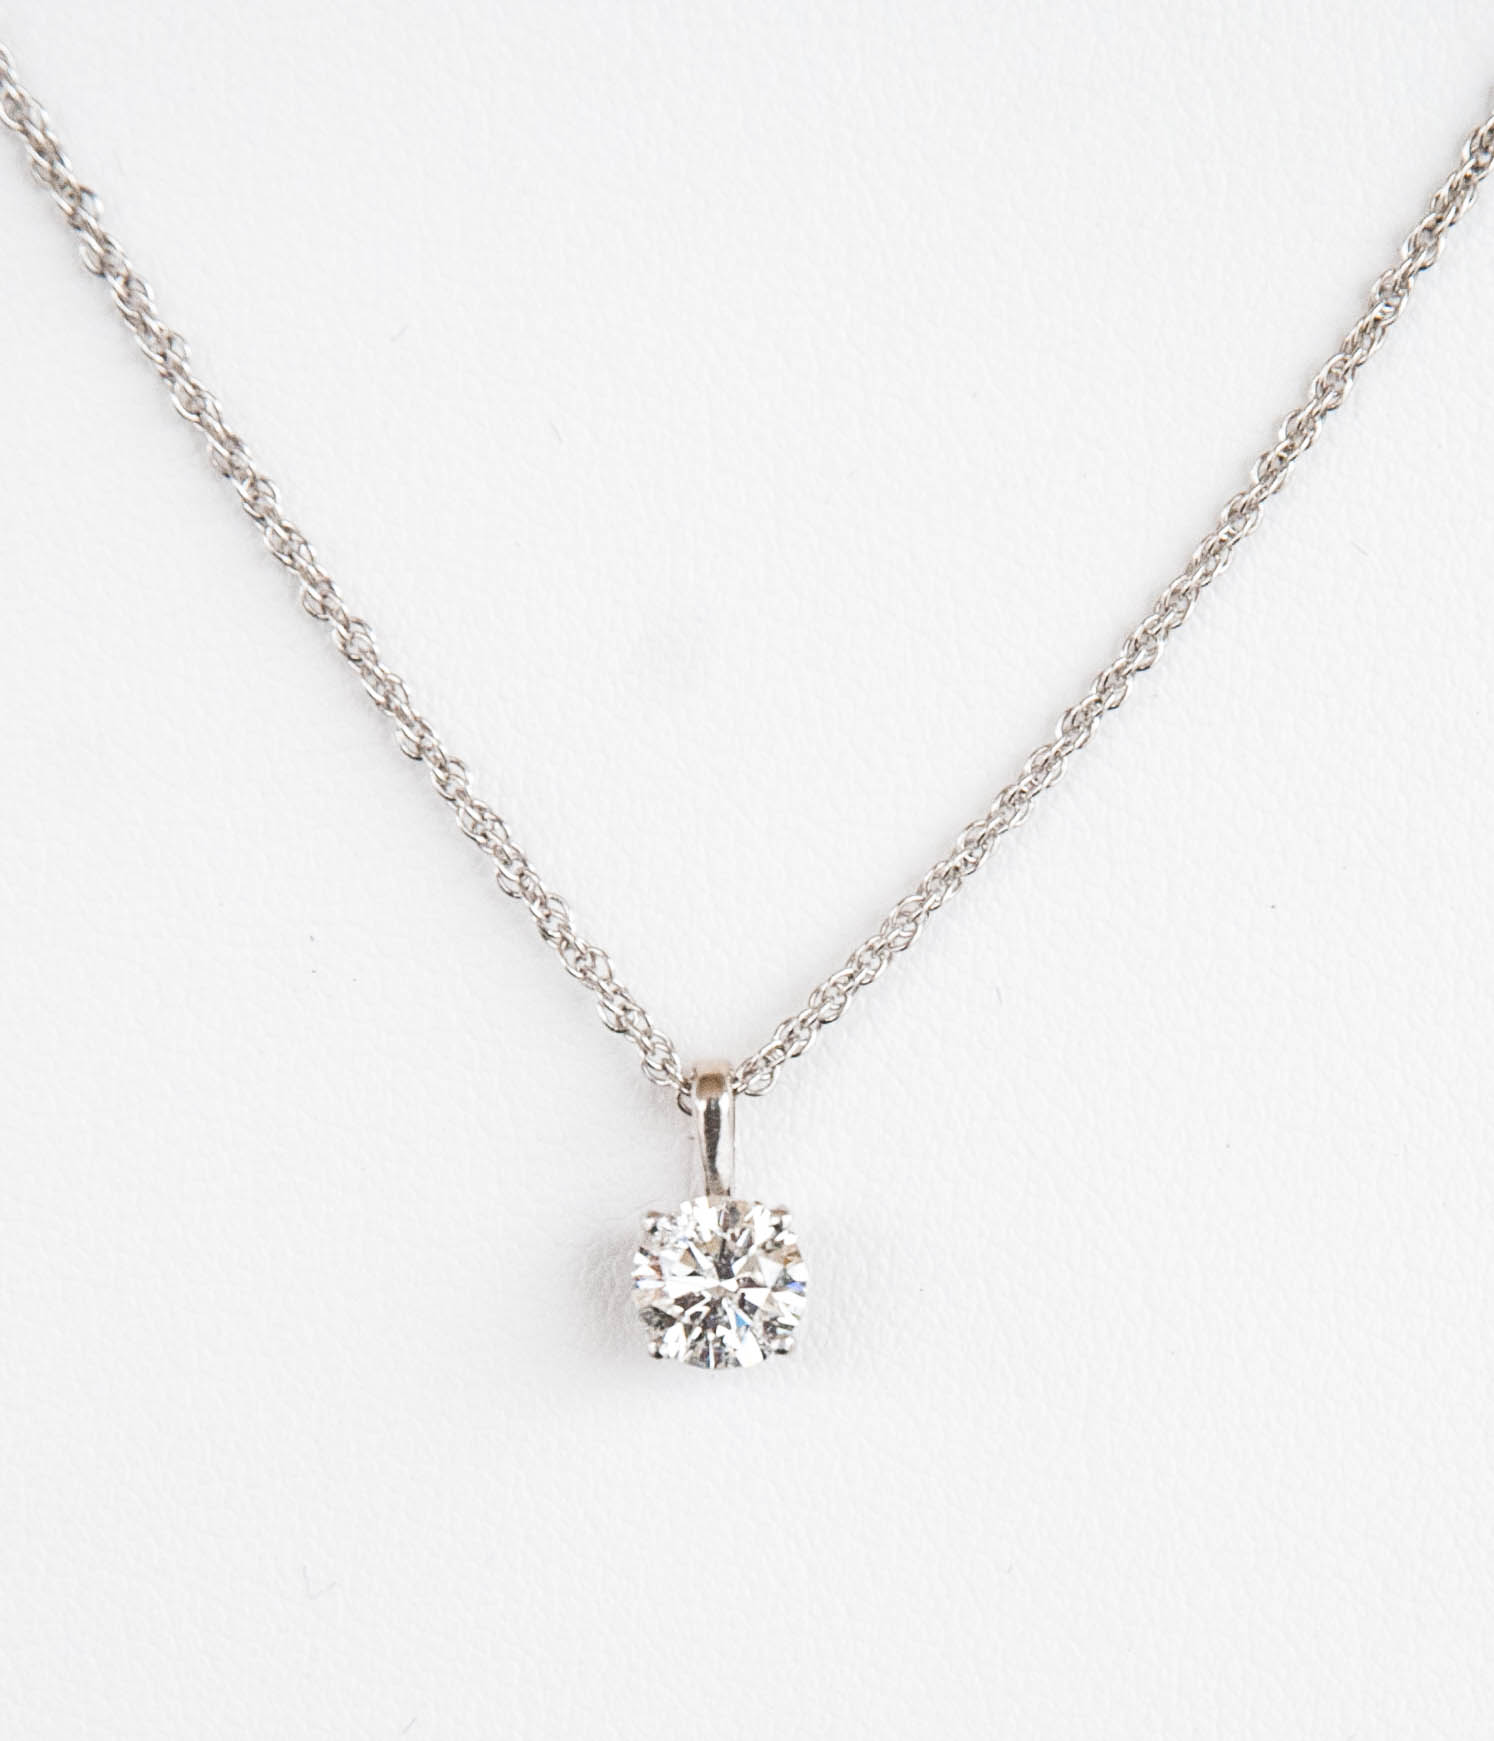 """160-356  14 Karat White Gold Pendant with One 0.75 Carat Round Diamond, Clarity I3, Color G 18"""" Sterling Silver Rope Chain $3,749.00"""